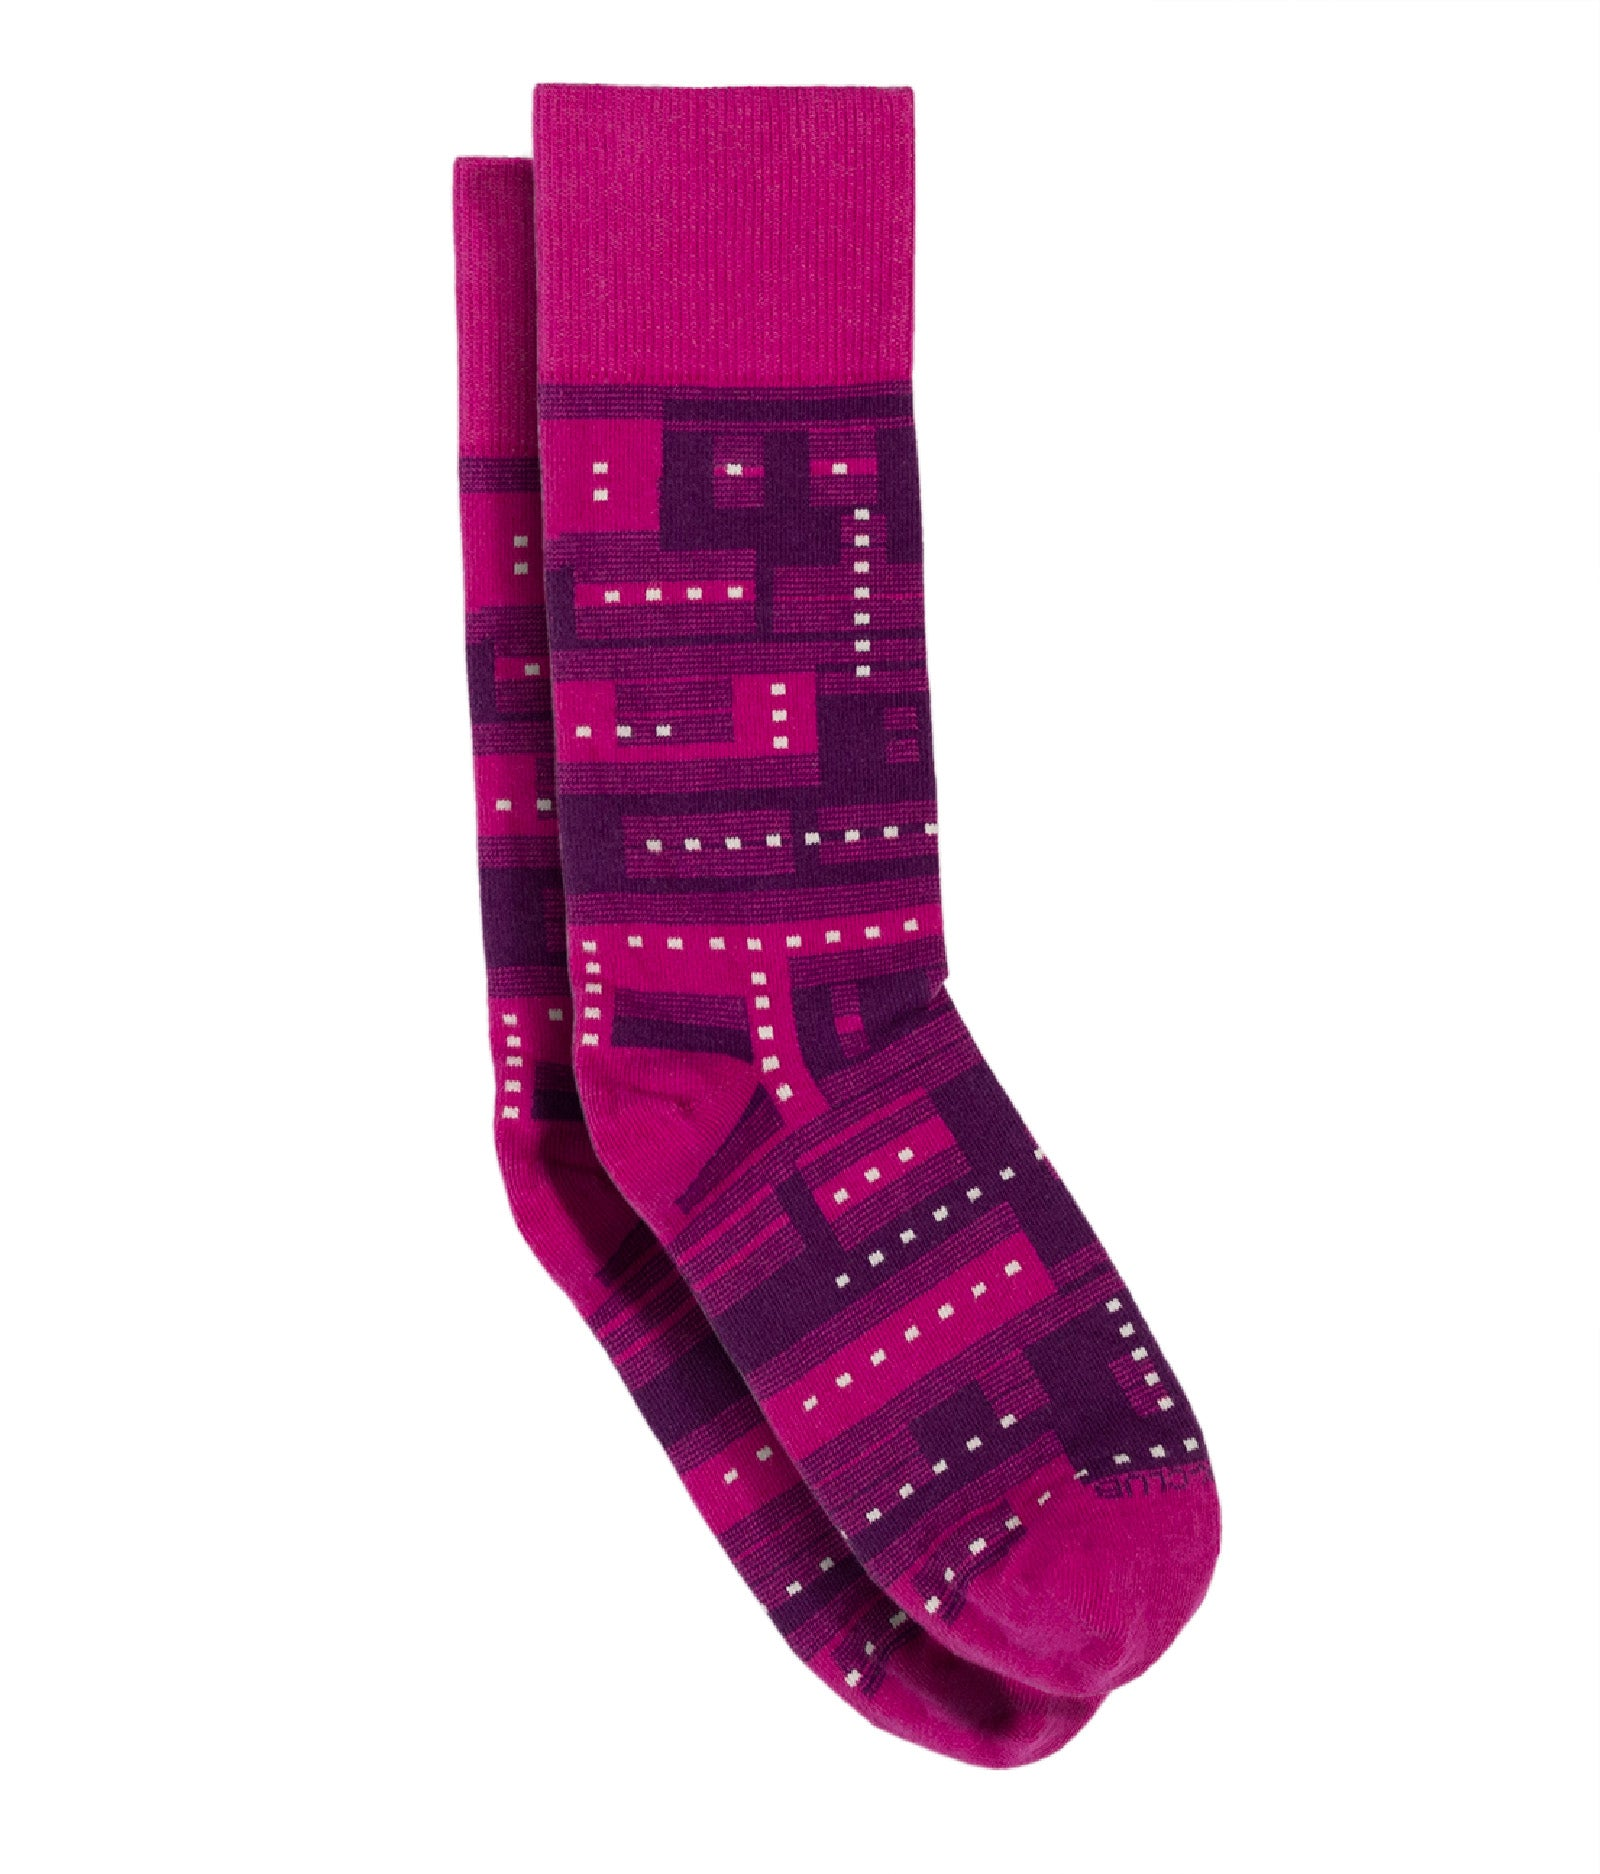 The Glitch - Deep Pink - Sock Club Store